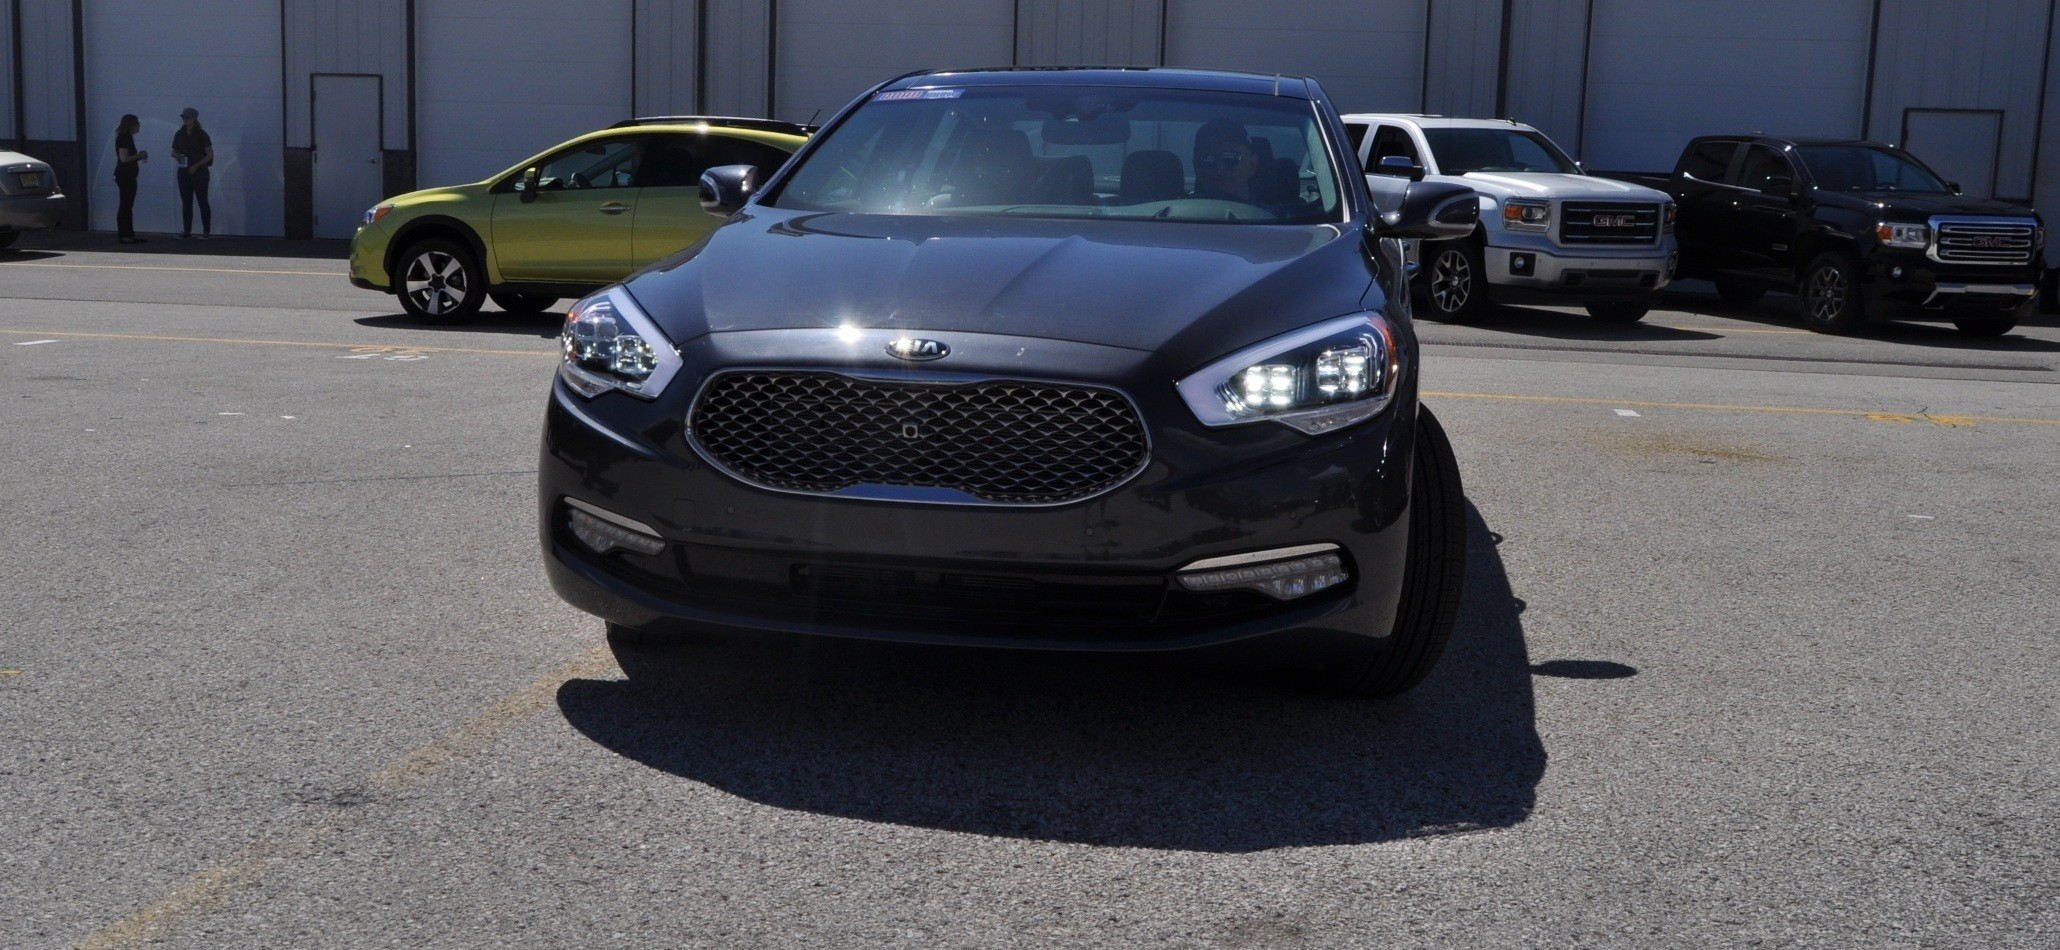 2015 Kia K900 LED Lighting Low, High and Brake Light Photos 22